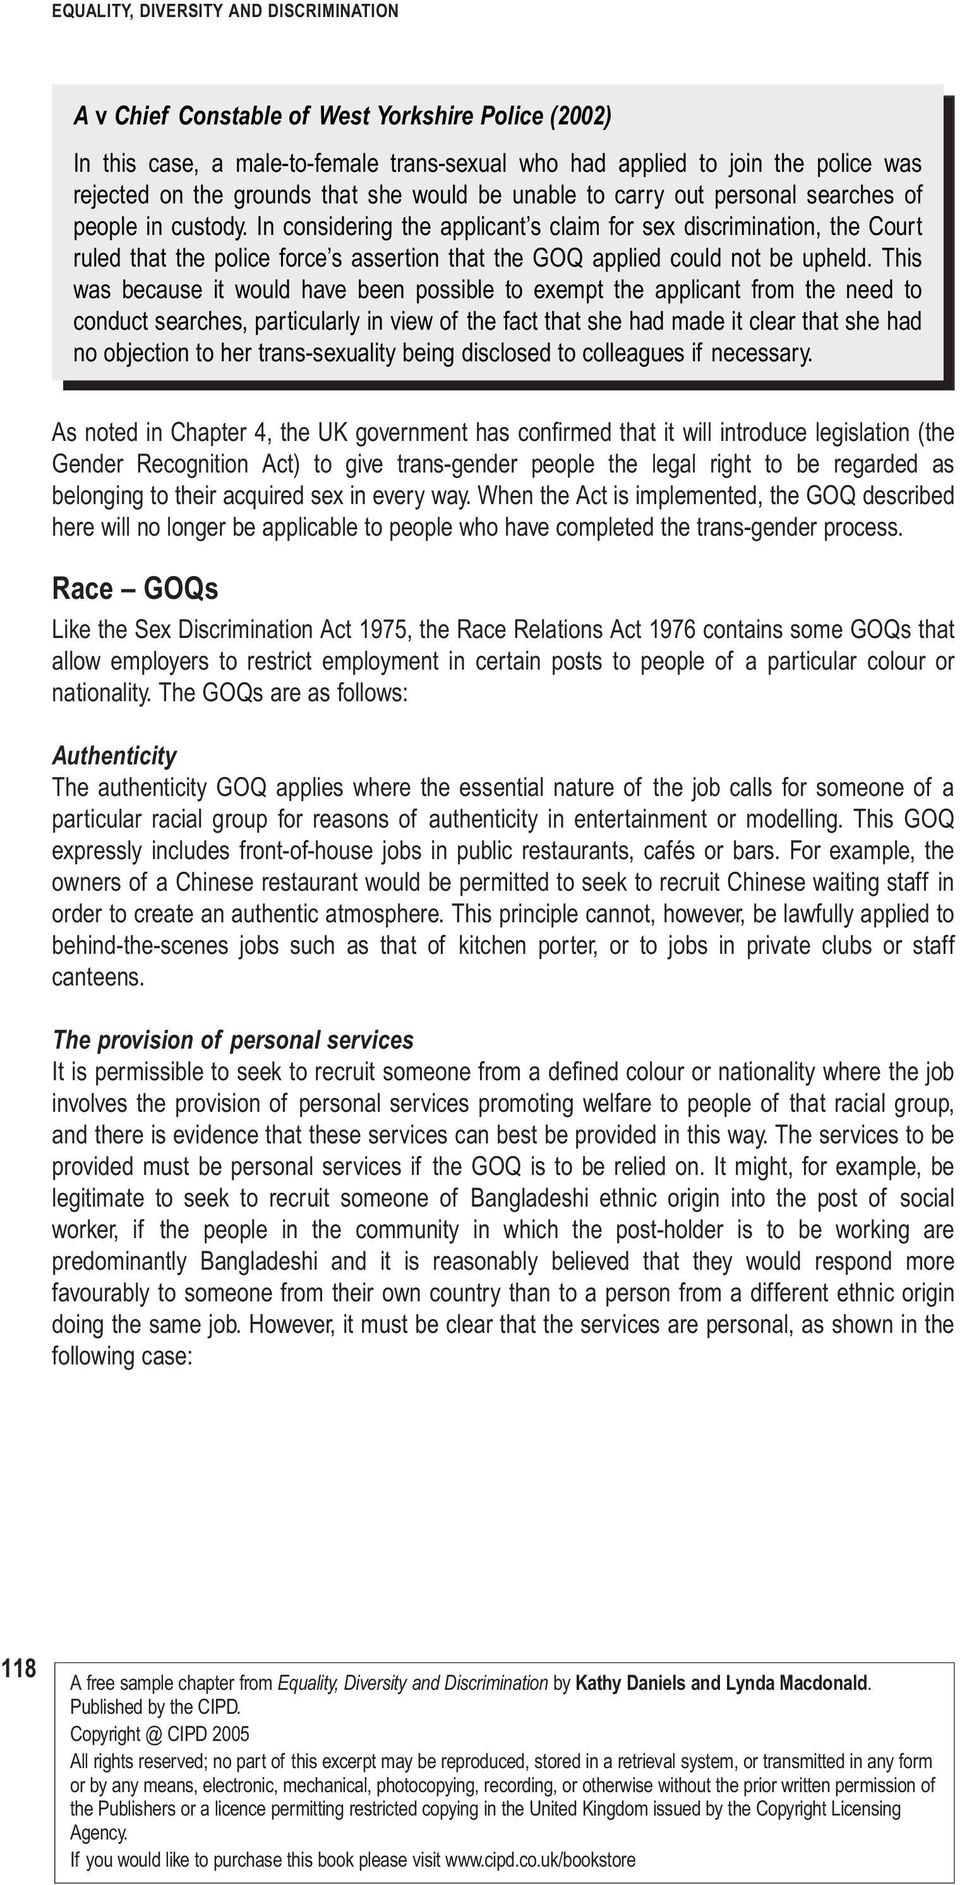 In considering the applicant s claim for sex discrimination, the Court ruled that the police force s assertion that the GOQ applied could not be upheld.